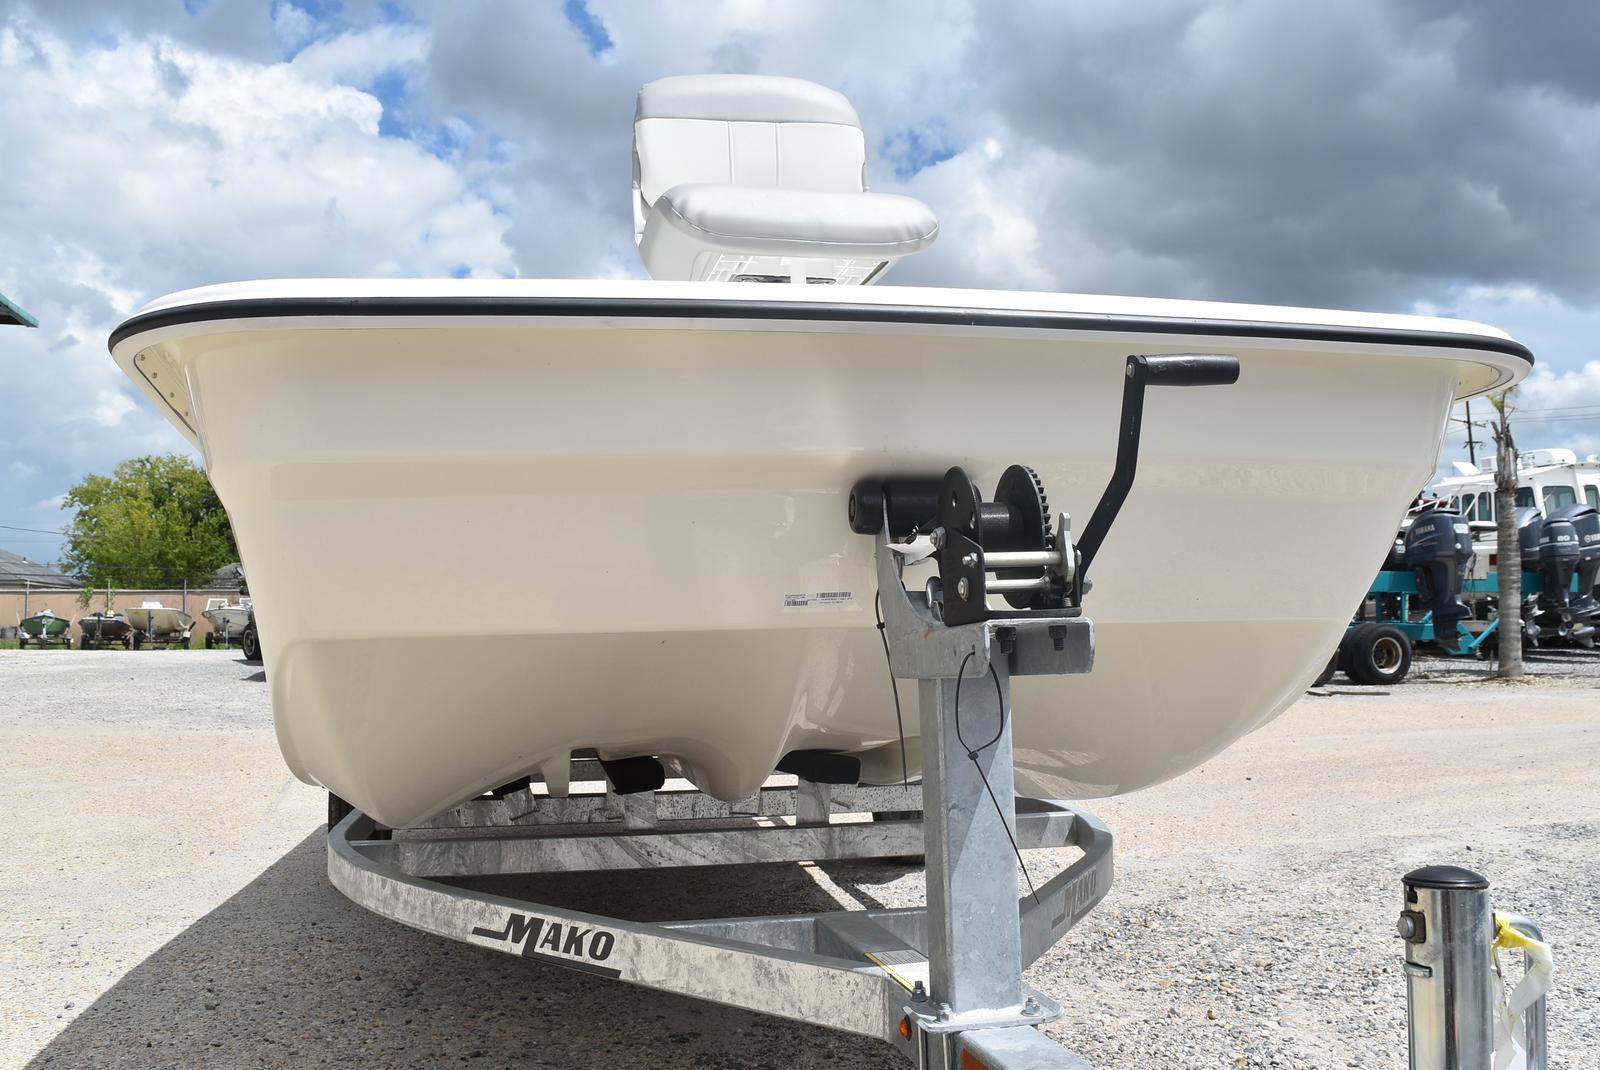 2020 Mako boat for sale, model of the boat is Pro Skiff 17, 75 ELPT & Image # 385 of 702